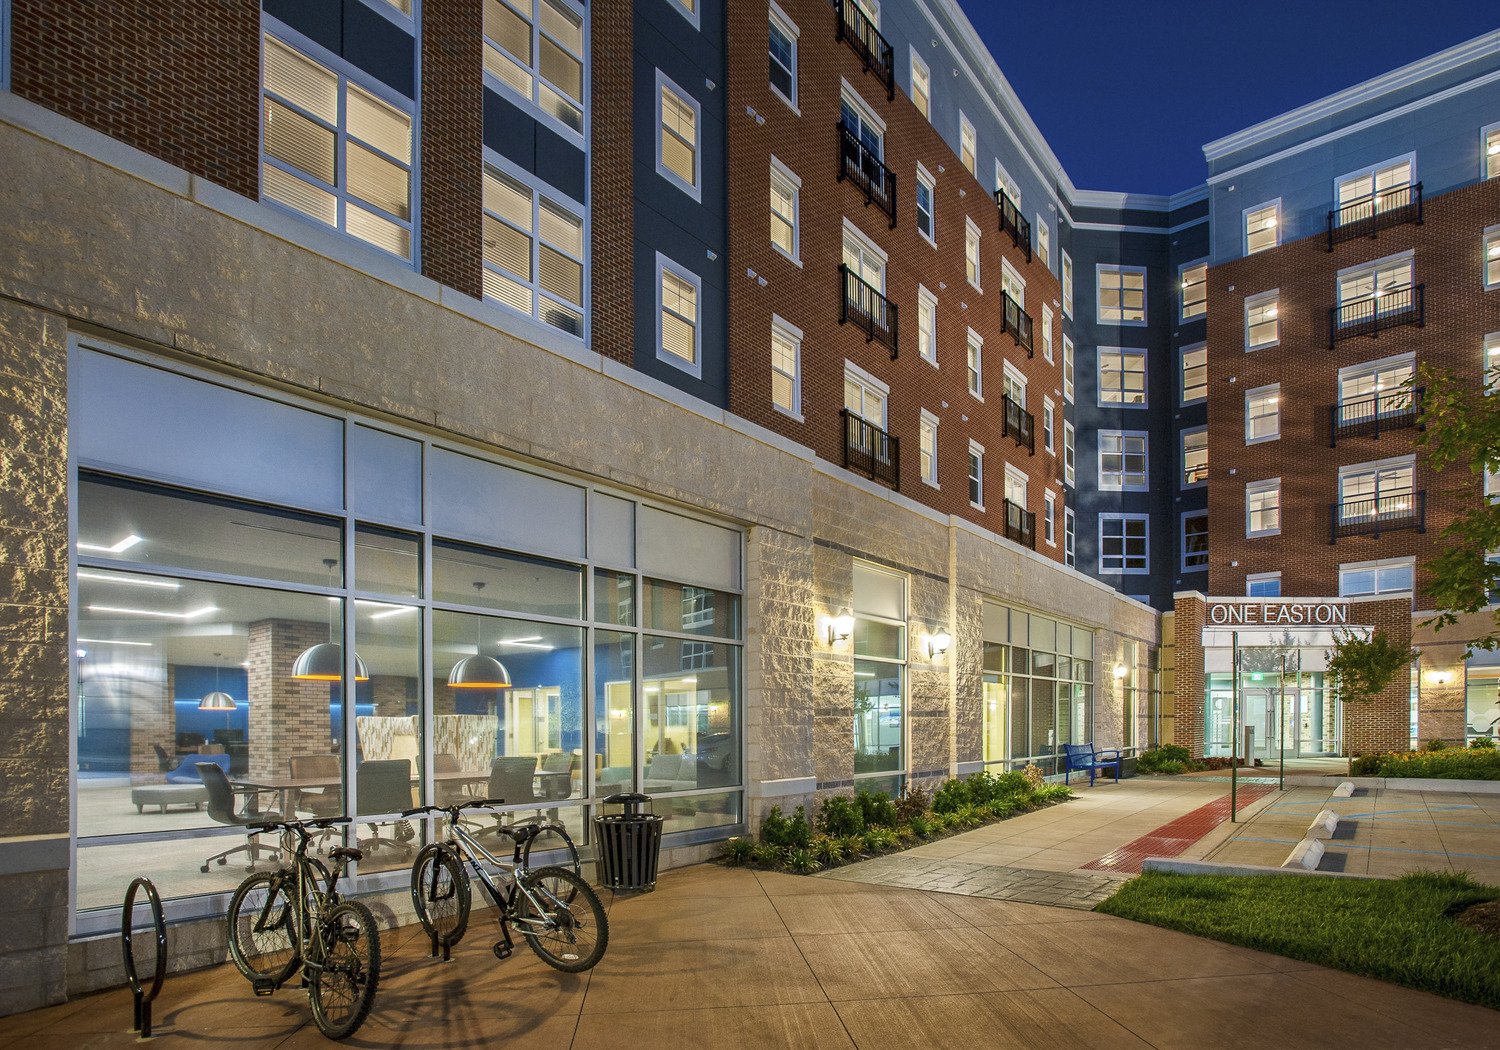 CBG builds One Easton, a 440-Bed Student Housing Community with Precast Parking Garage and Amenity Areas in Newark, DE - Image #4